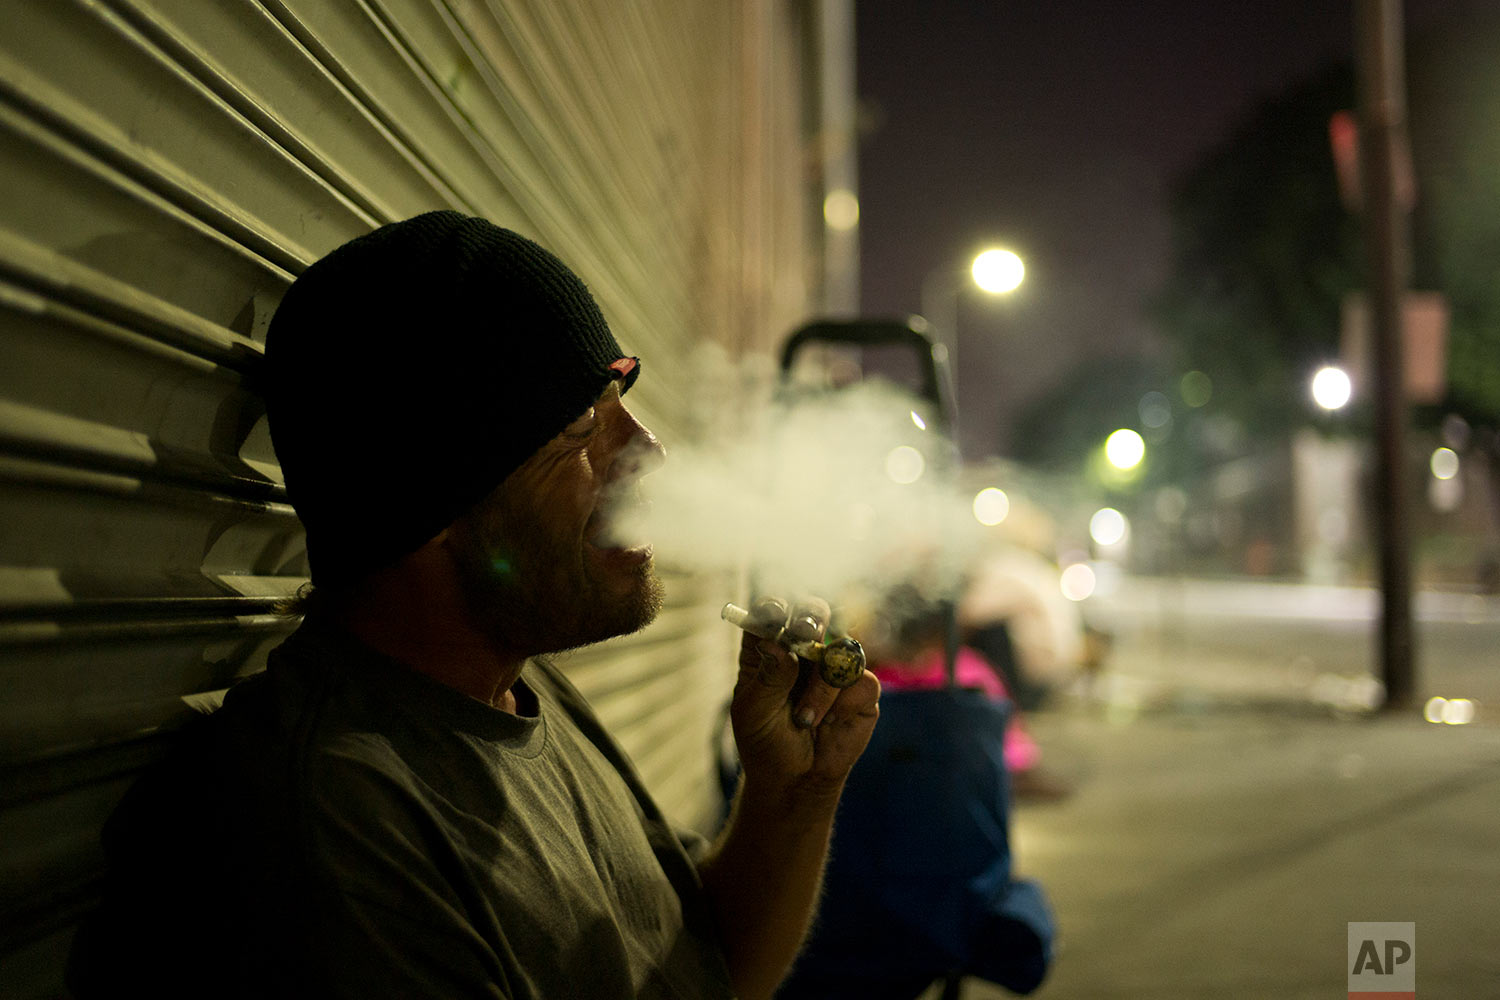 D. J. Meek, a 40-year-old homeless drug addict, smokes crystal meth Friday, Sept. 8, 2017, in the Skid Row area of downtown Los Angeles. Meeks' veins are collapsed due to chronic use of heroin. He said talking to himself makes him unemployable. (AP Photo/Jae C. Hong)